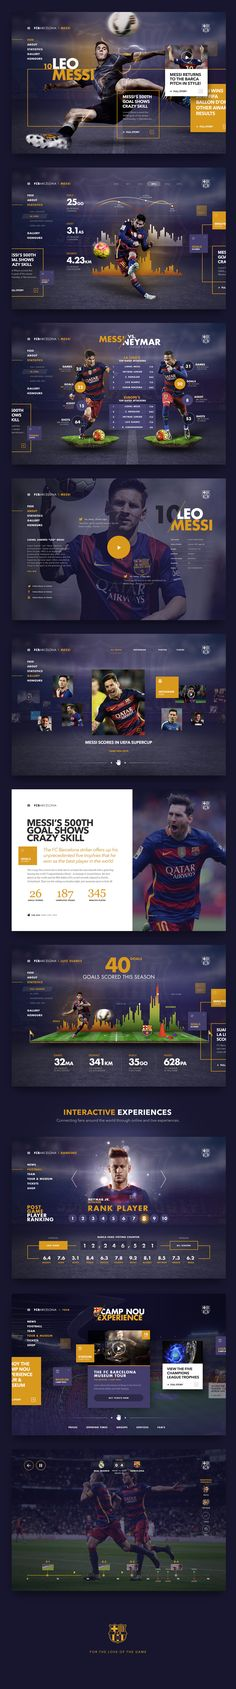 Excelente interfaz! - FC Barcelona design by Fred Nerby. https://www.behance.net/gallery/37276397/FC-Barcelona